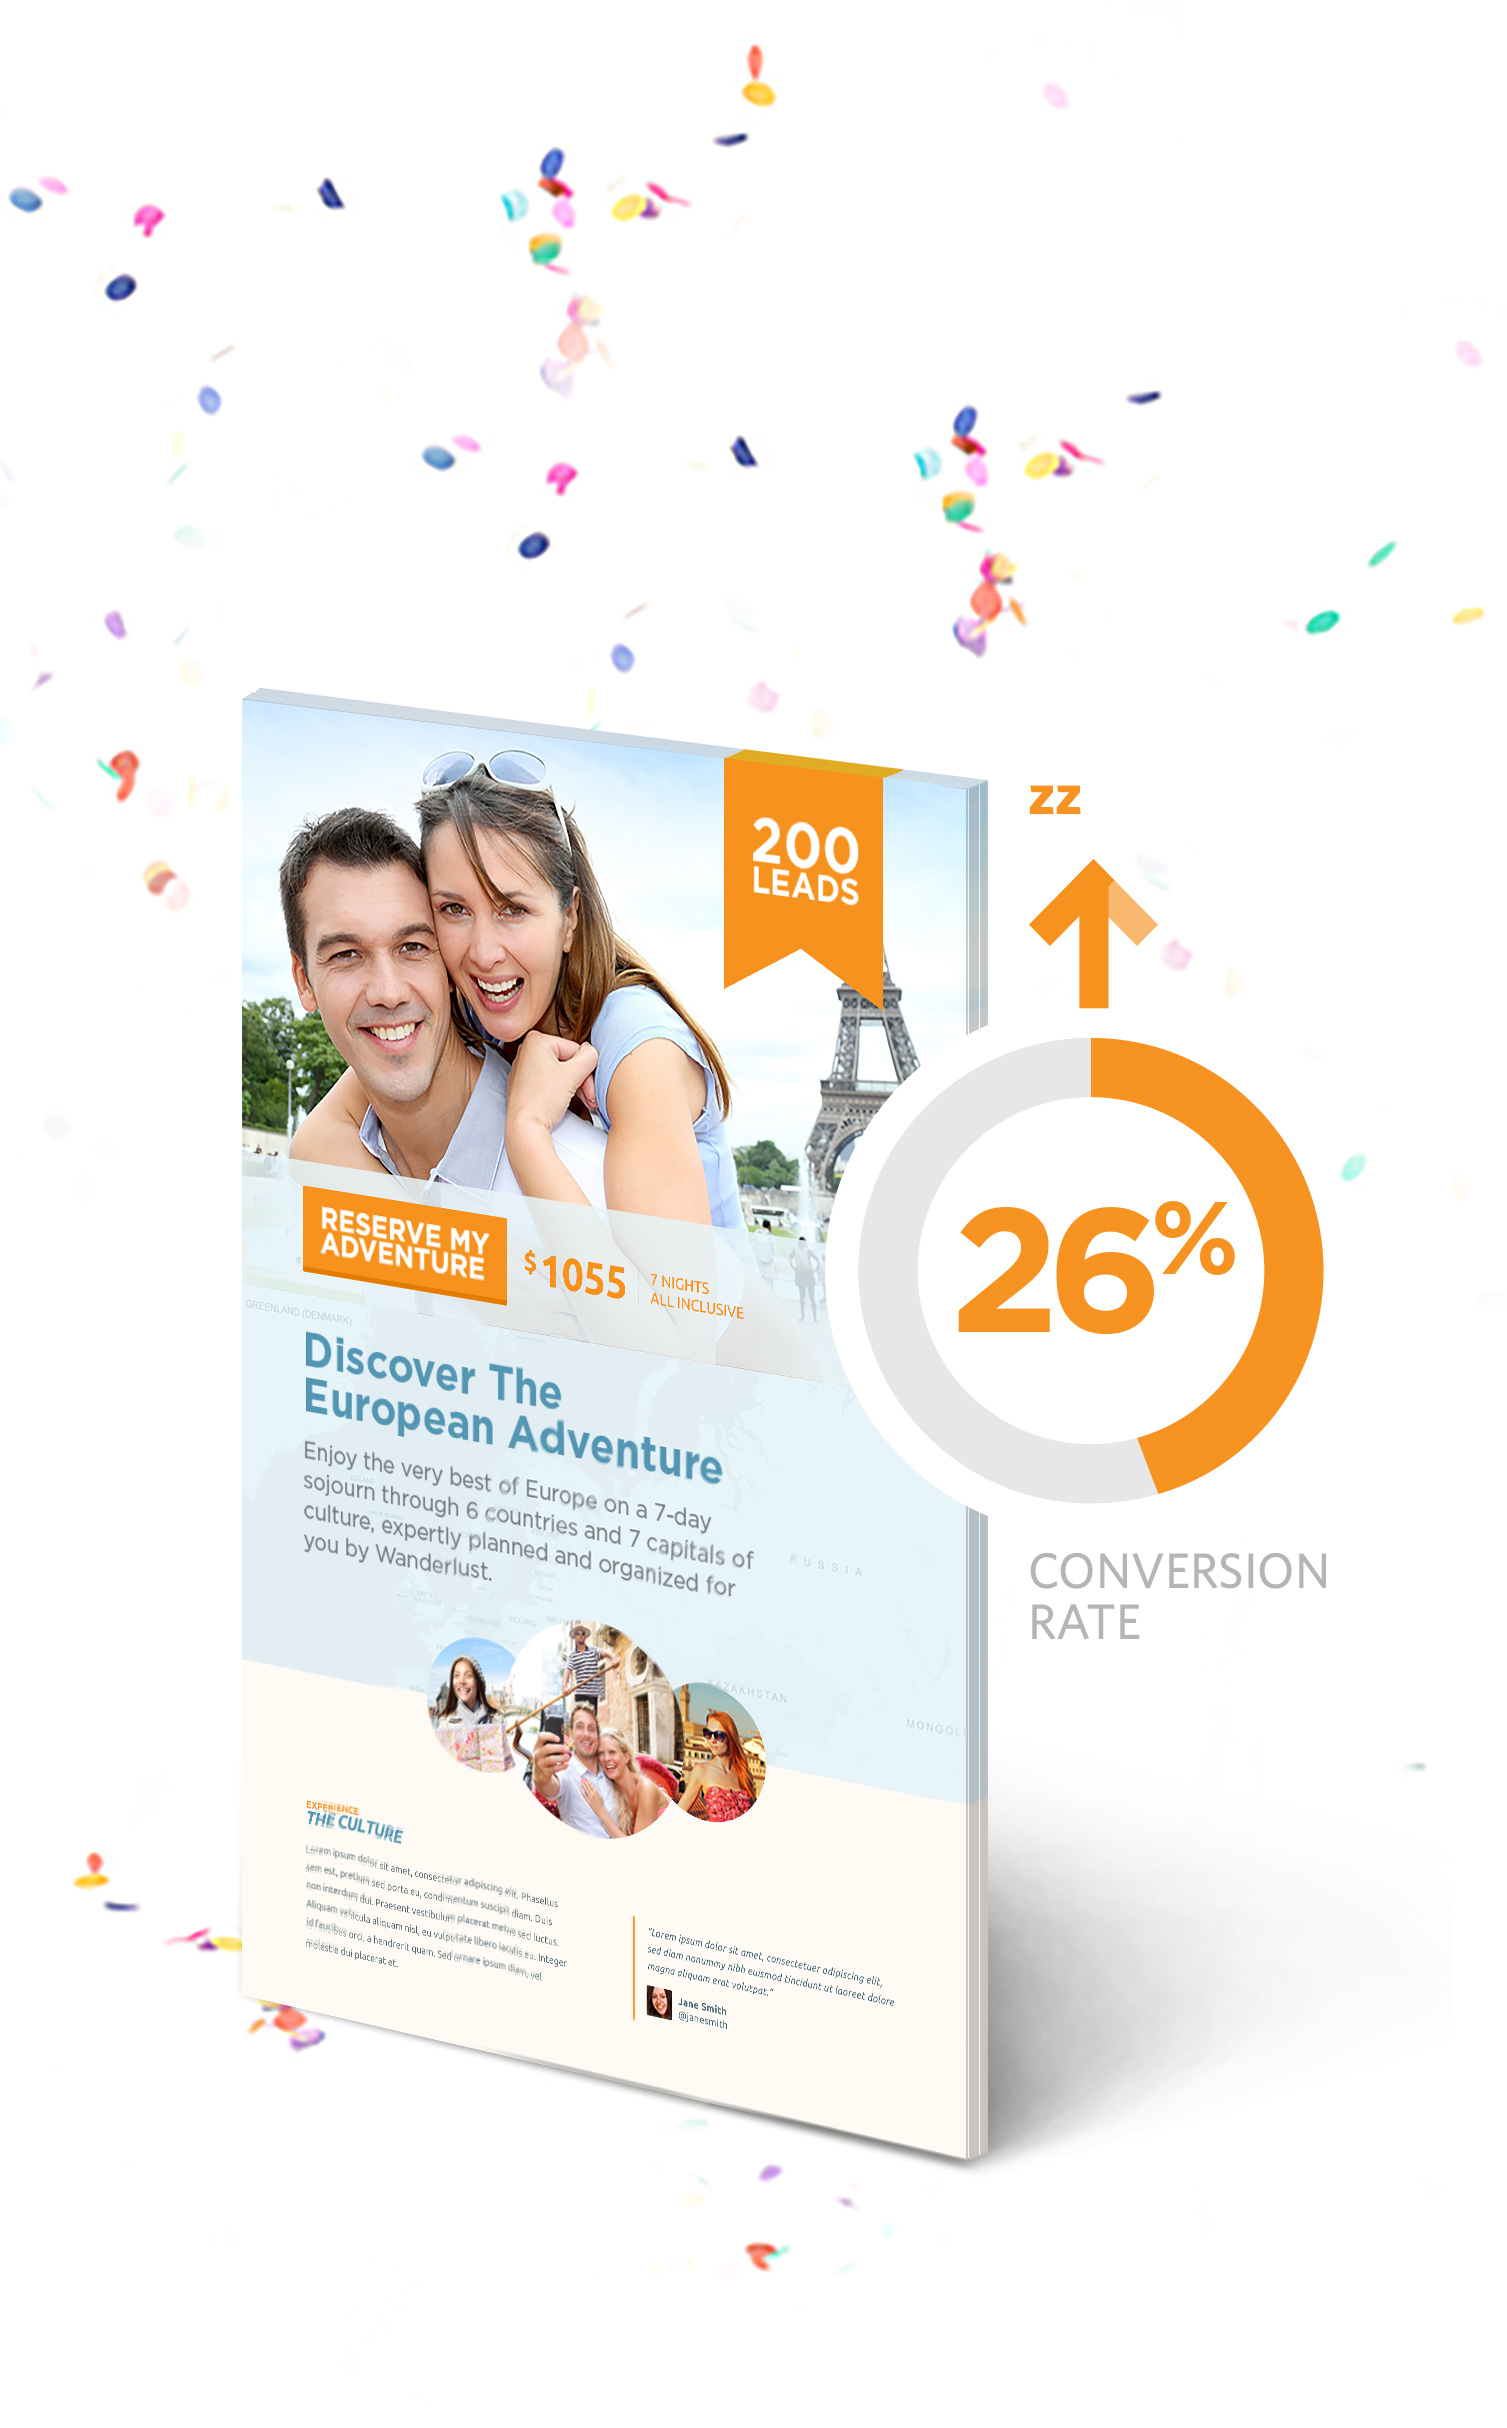 conversion rate going up